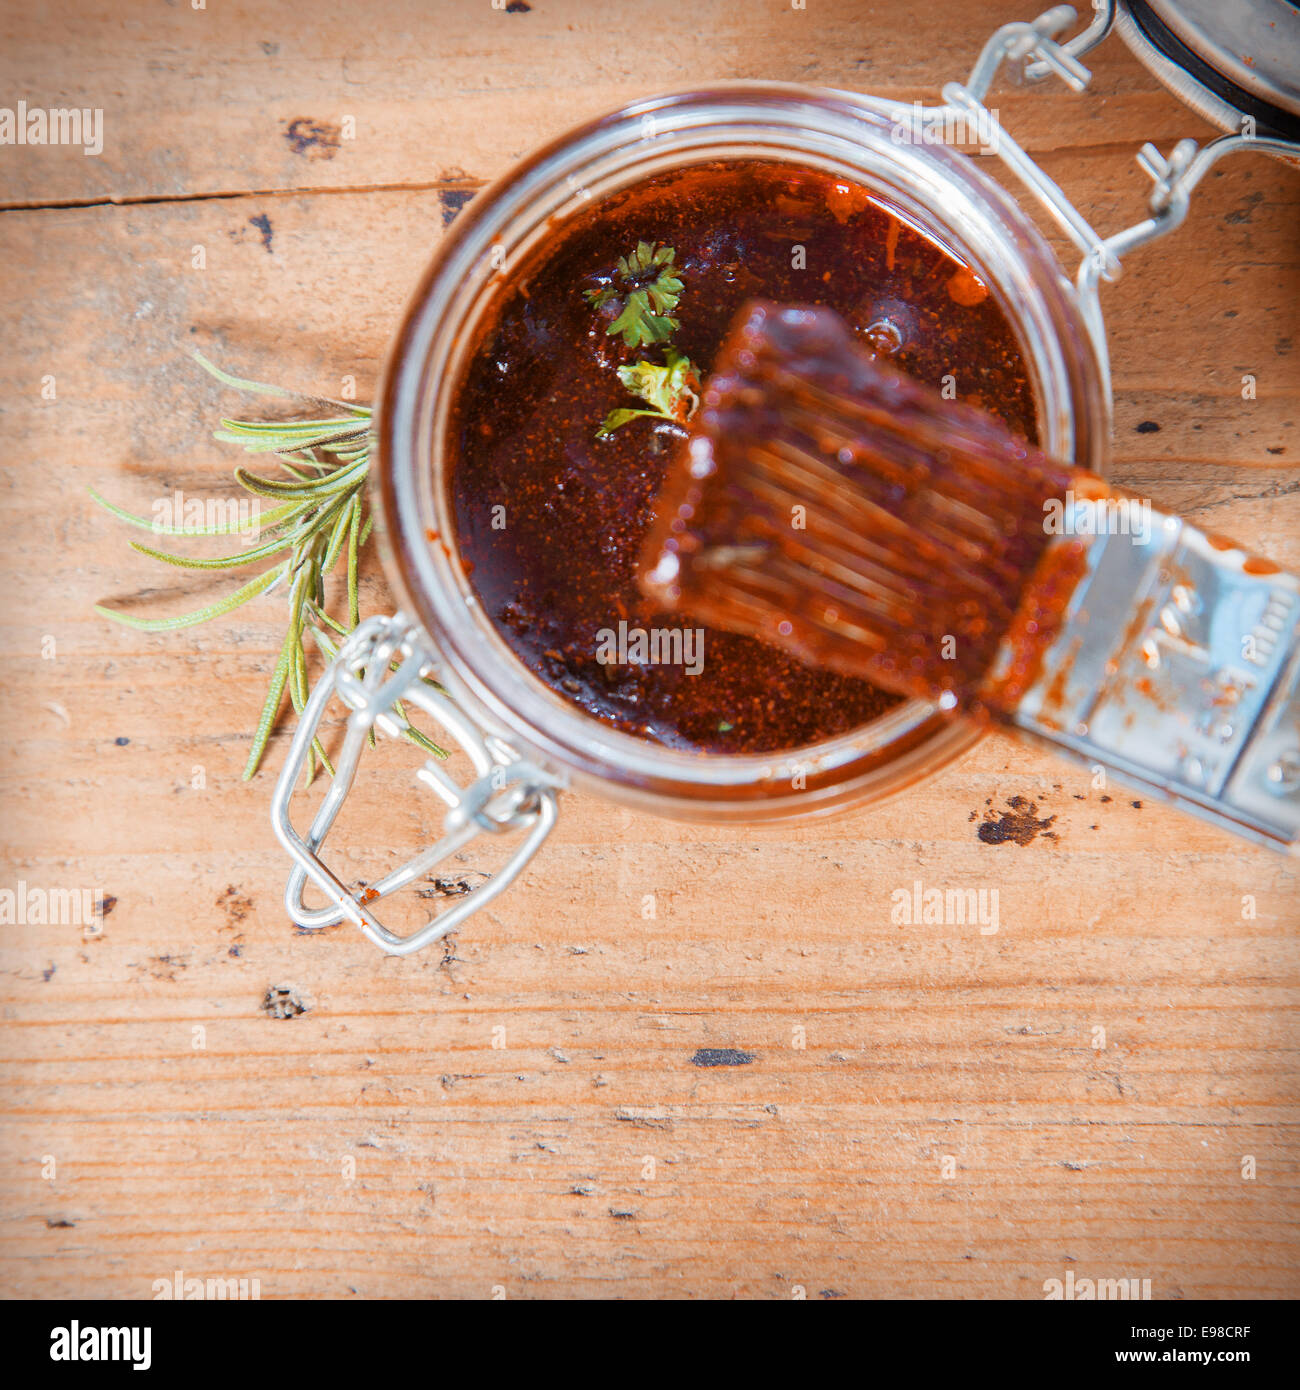 Overhead view of an open jar of savory spicy basting sauce with a basting brush and sprig of fresh rosemary on a - Stock Image